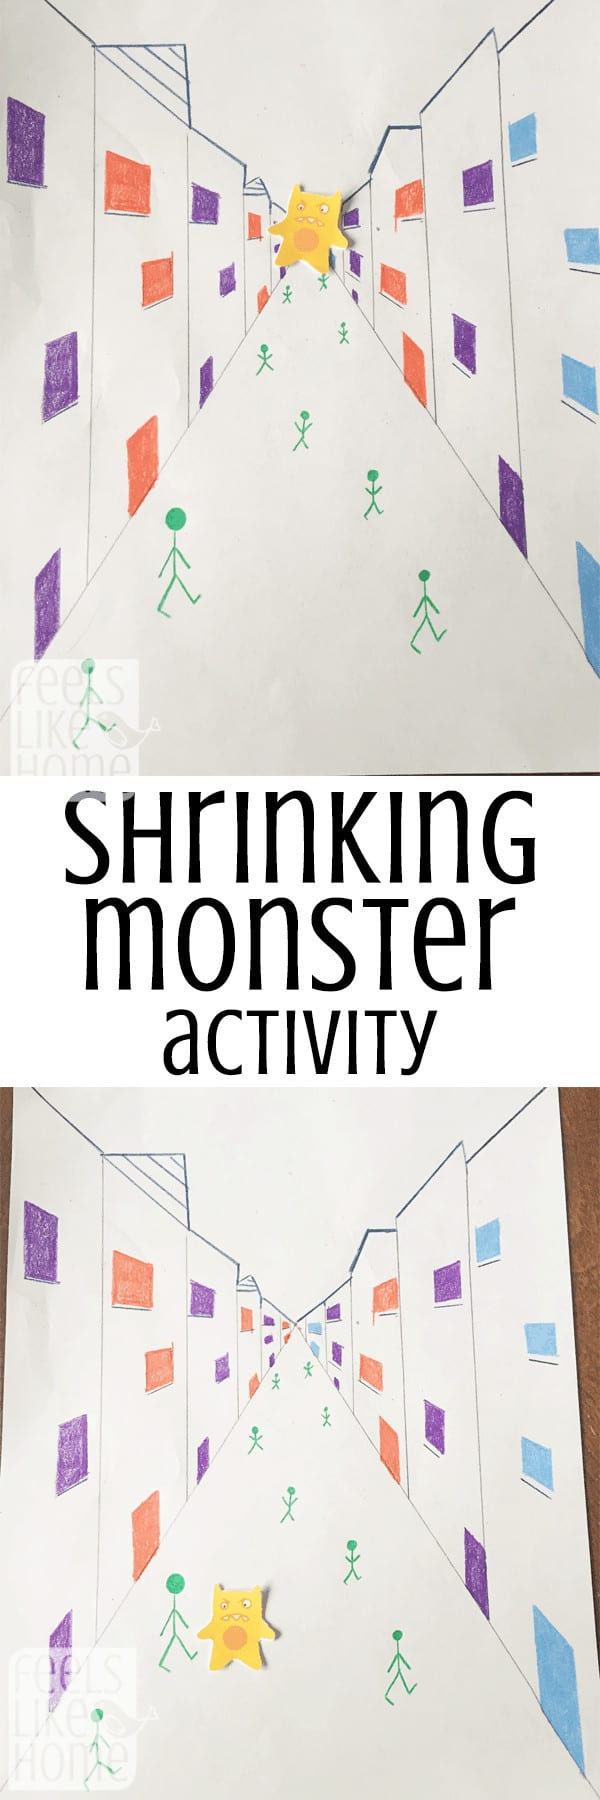 This science project for kids is super simple and easy, but the results are really neat. When you move the monster, it appears to shrink or grow depending on its surroundings. This would be great in a project on optical illusions!